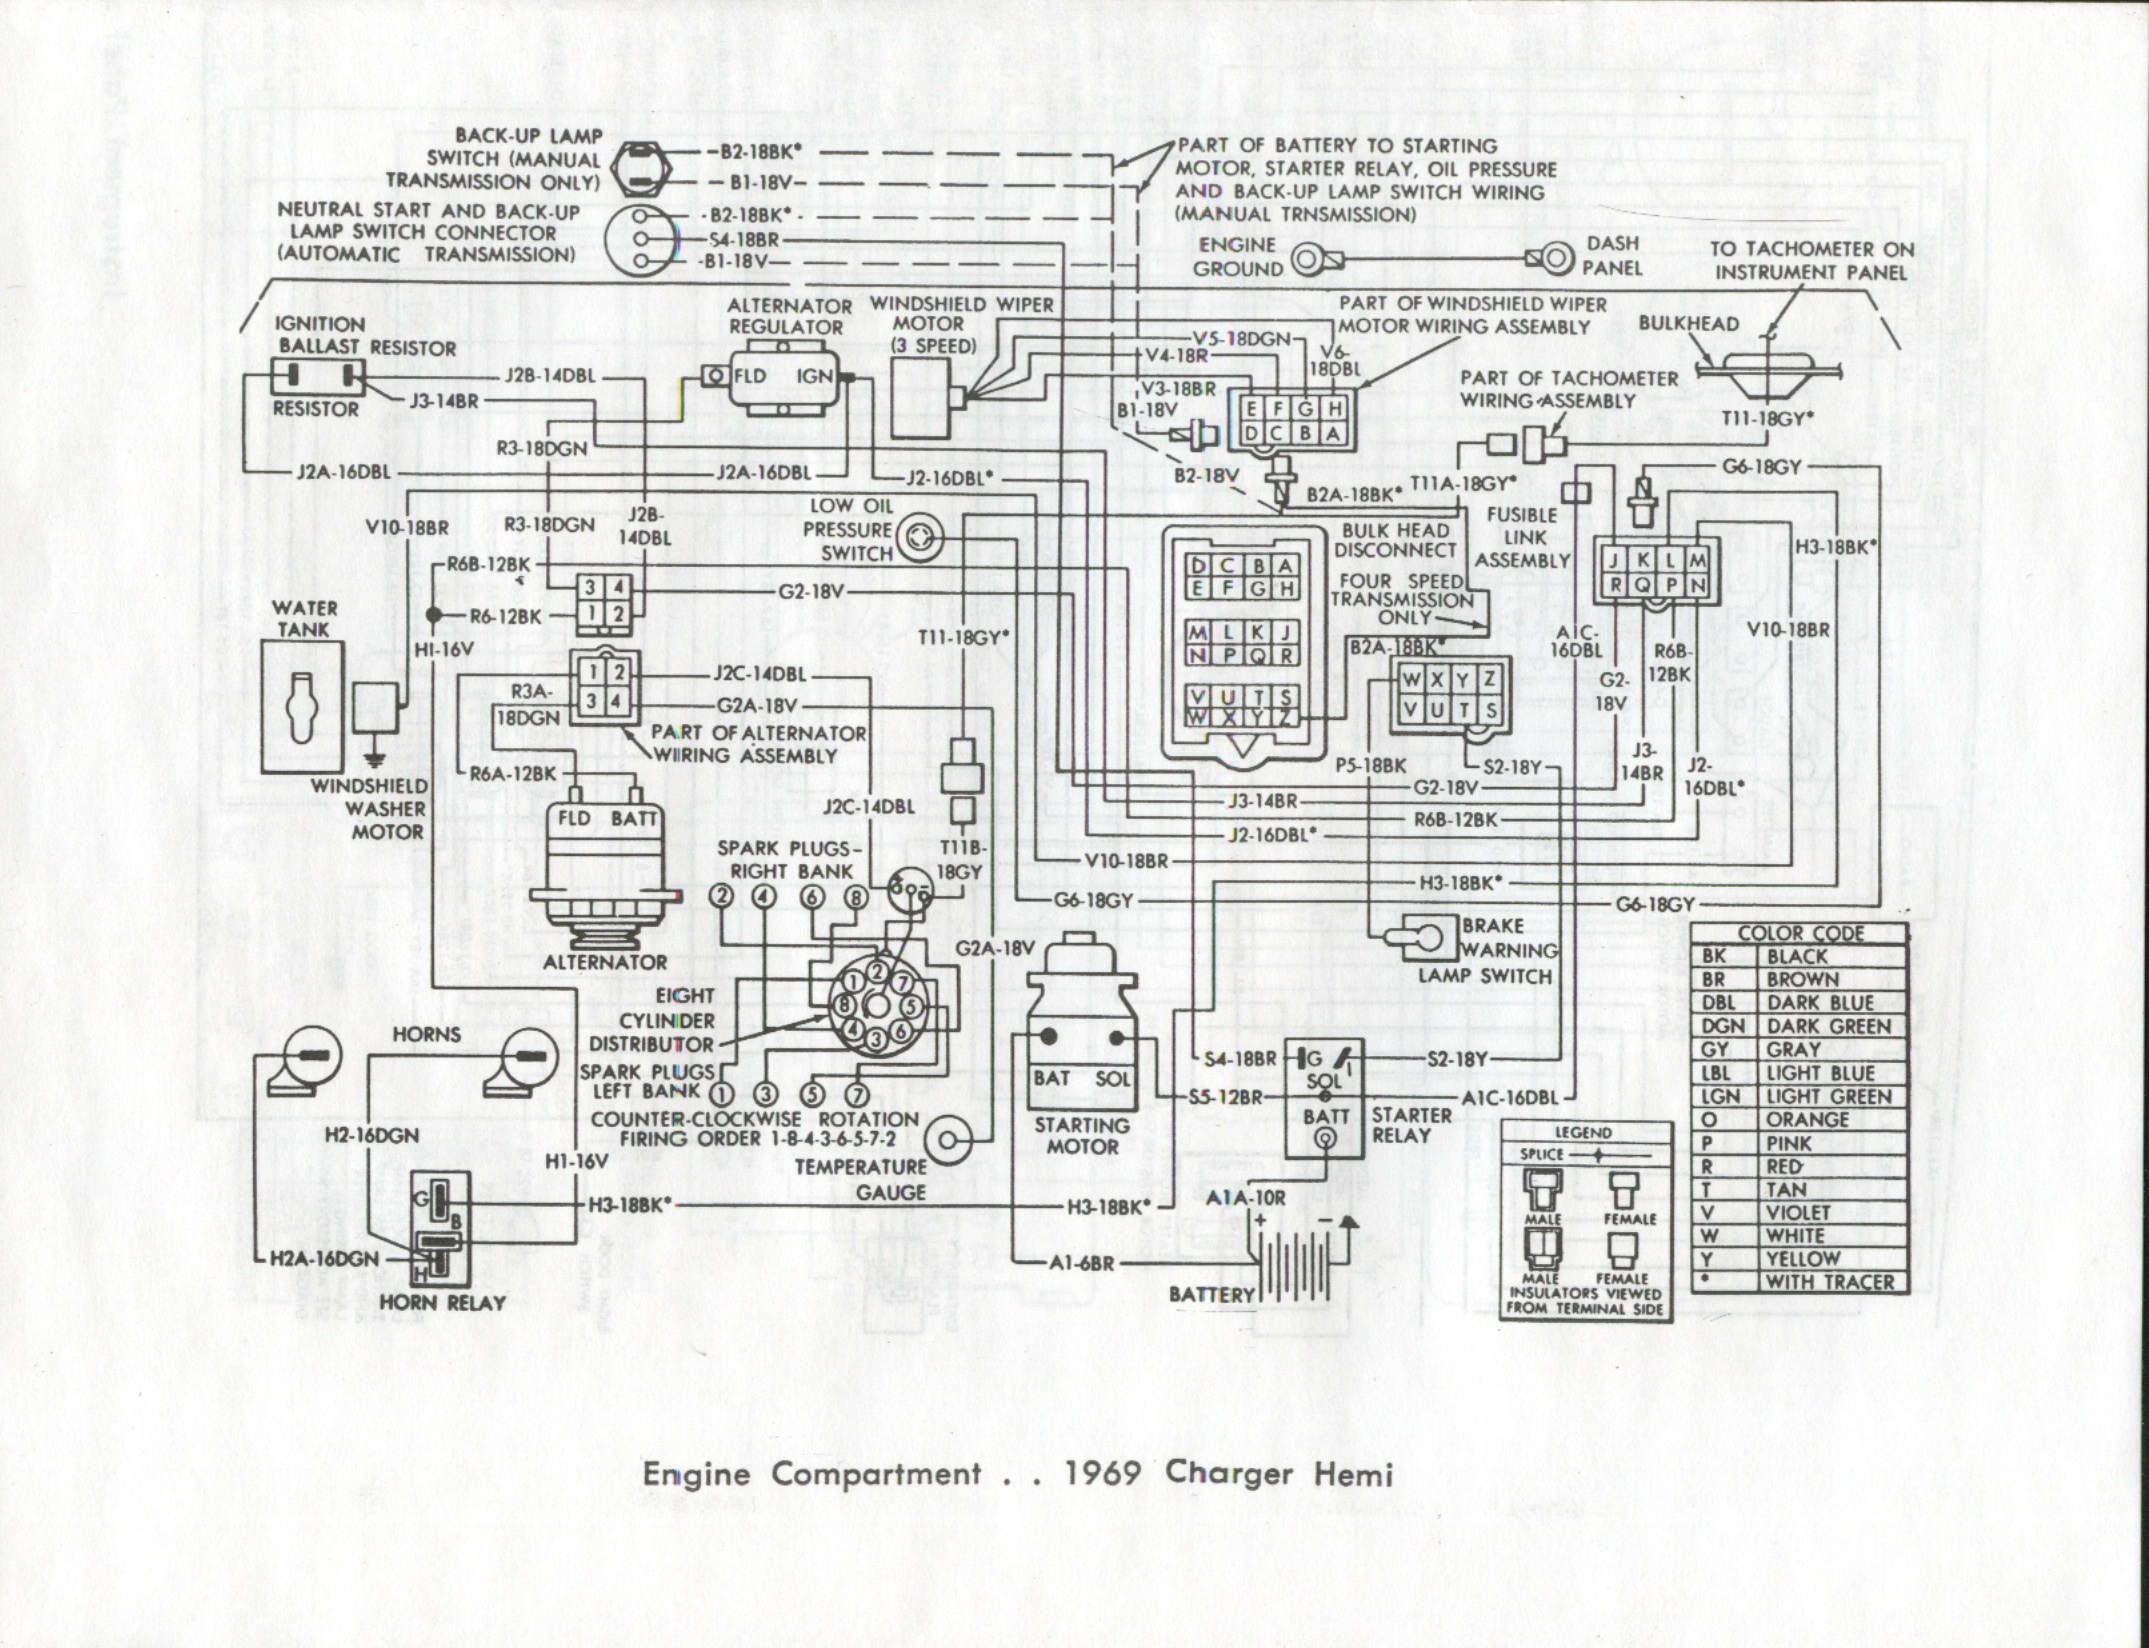 Cb 7064 69 Charger Fuse Box Wiring Diagram